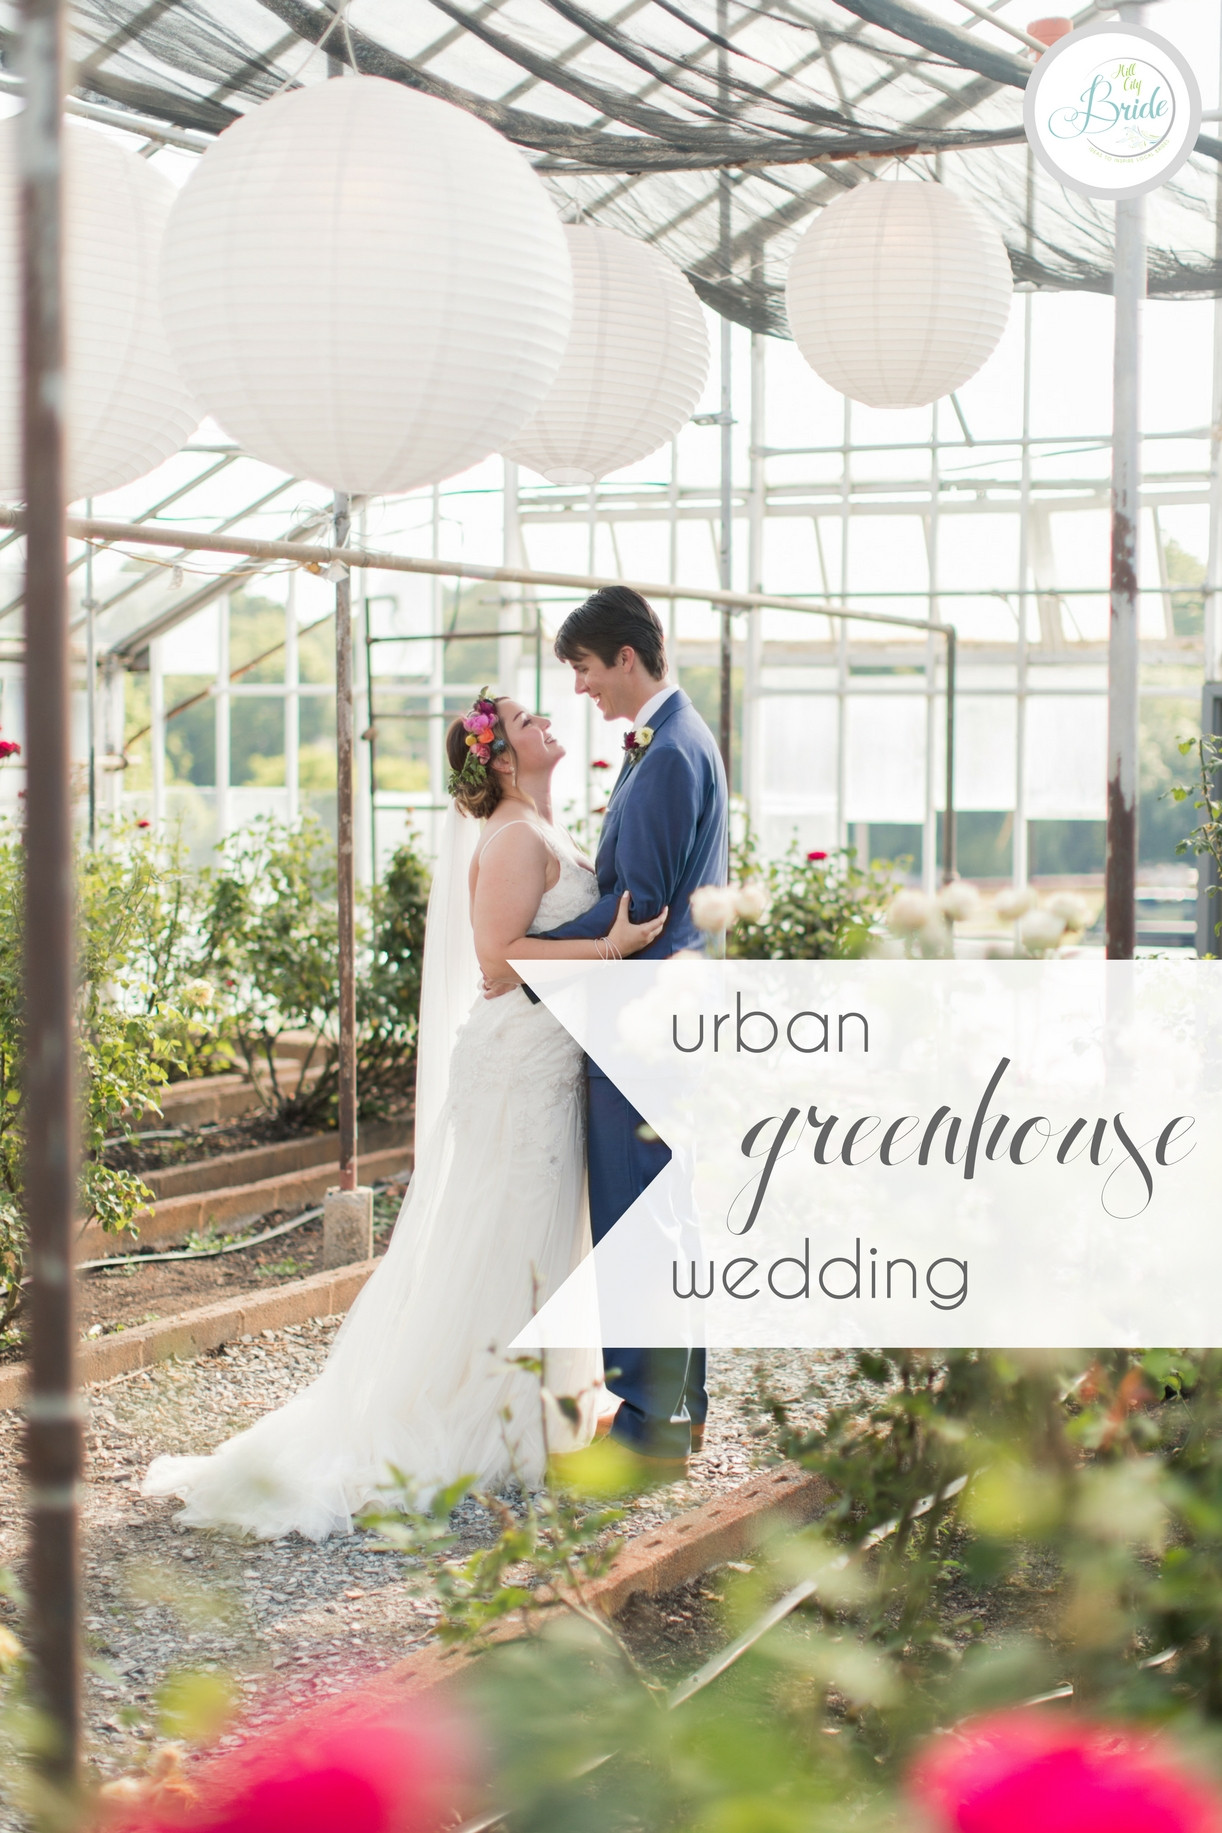 Best ideas about DIY Wedding Blog . Save or Pin Stunning Urban Greenhouse Wedding with DIY Touches Hill Now.